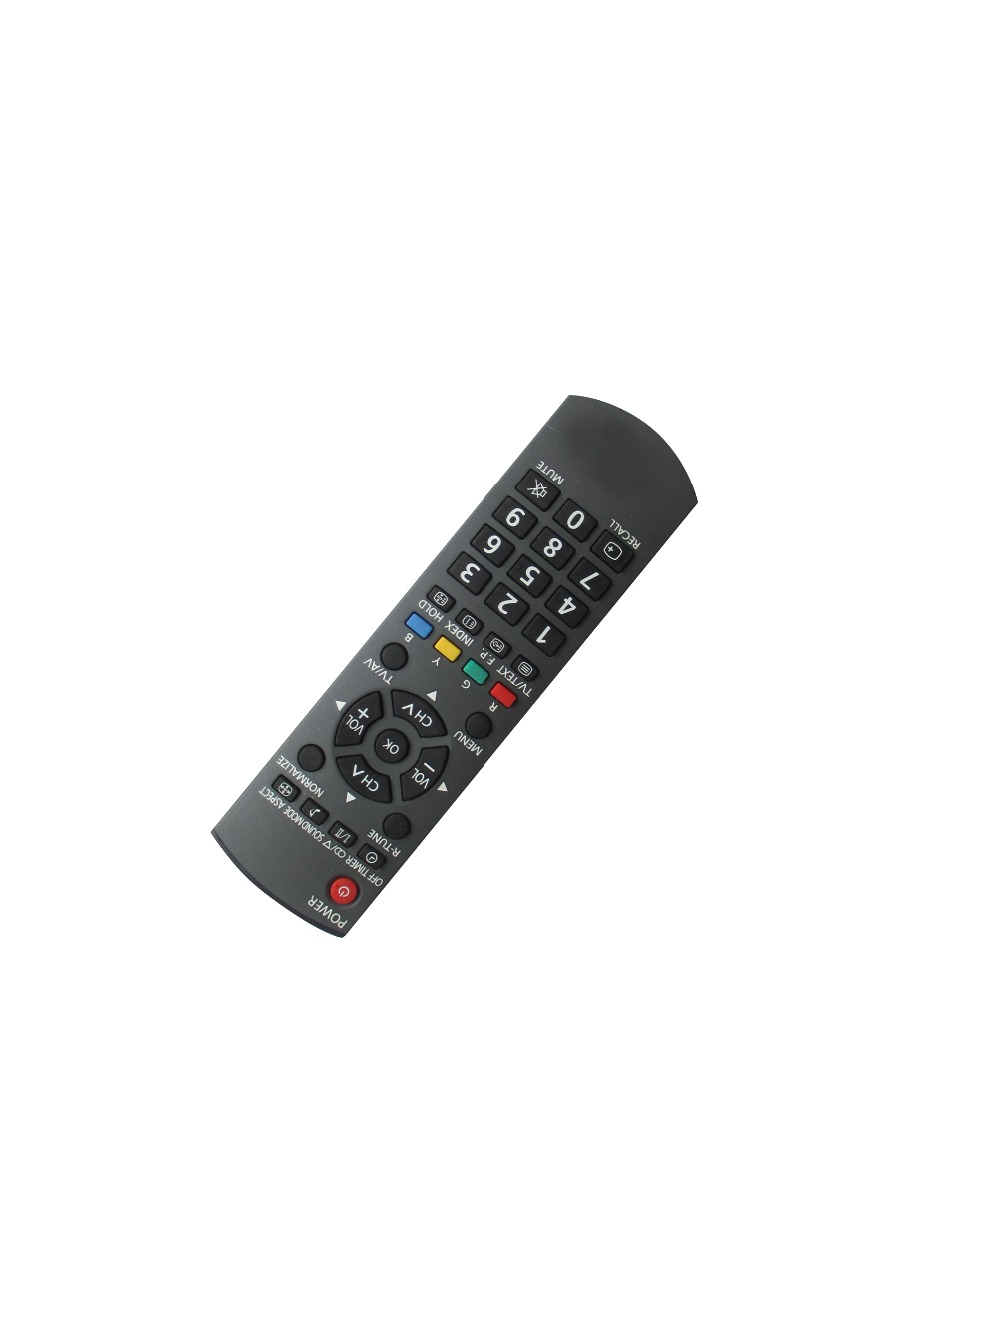 10PCS Remote Control For Panasonic TH 42PX7A TH L39EM6A TH L39EV6A TH L50B6A TH L50EM6A TH P60S60A EUR7651150 TH 42PX70A LED TV